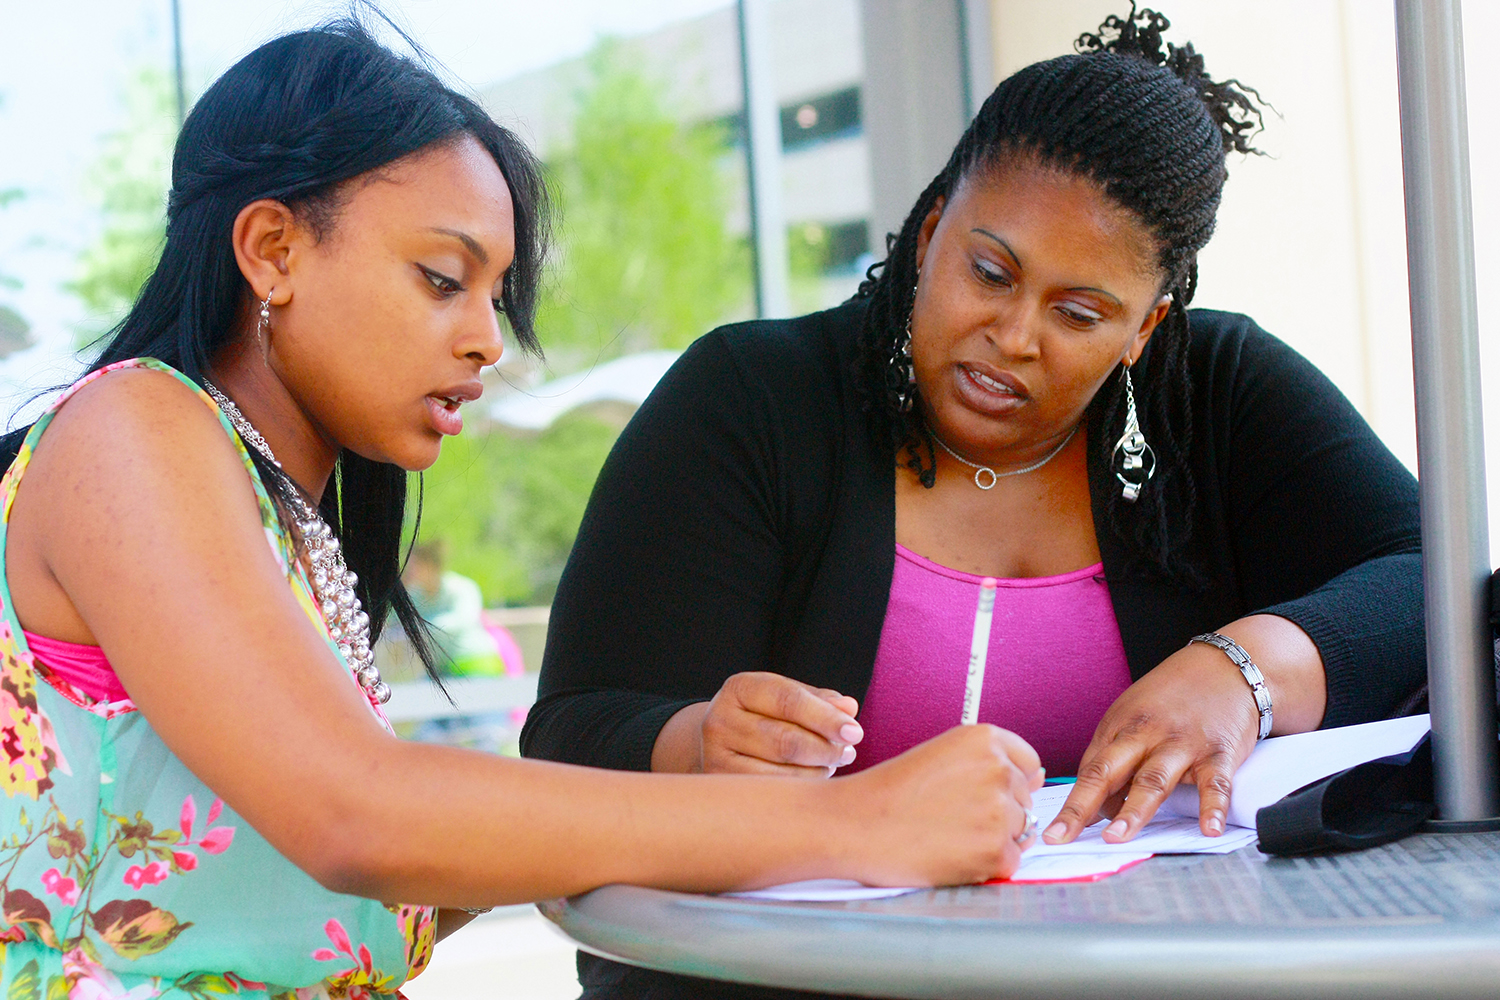 Faith Alexander and her mother LaTesha Alexander do homework outside of TR Campus. LaTesha is one of many single mothers who attend TCC. Photo by Carrie Duke/The Collegian